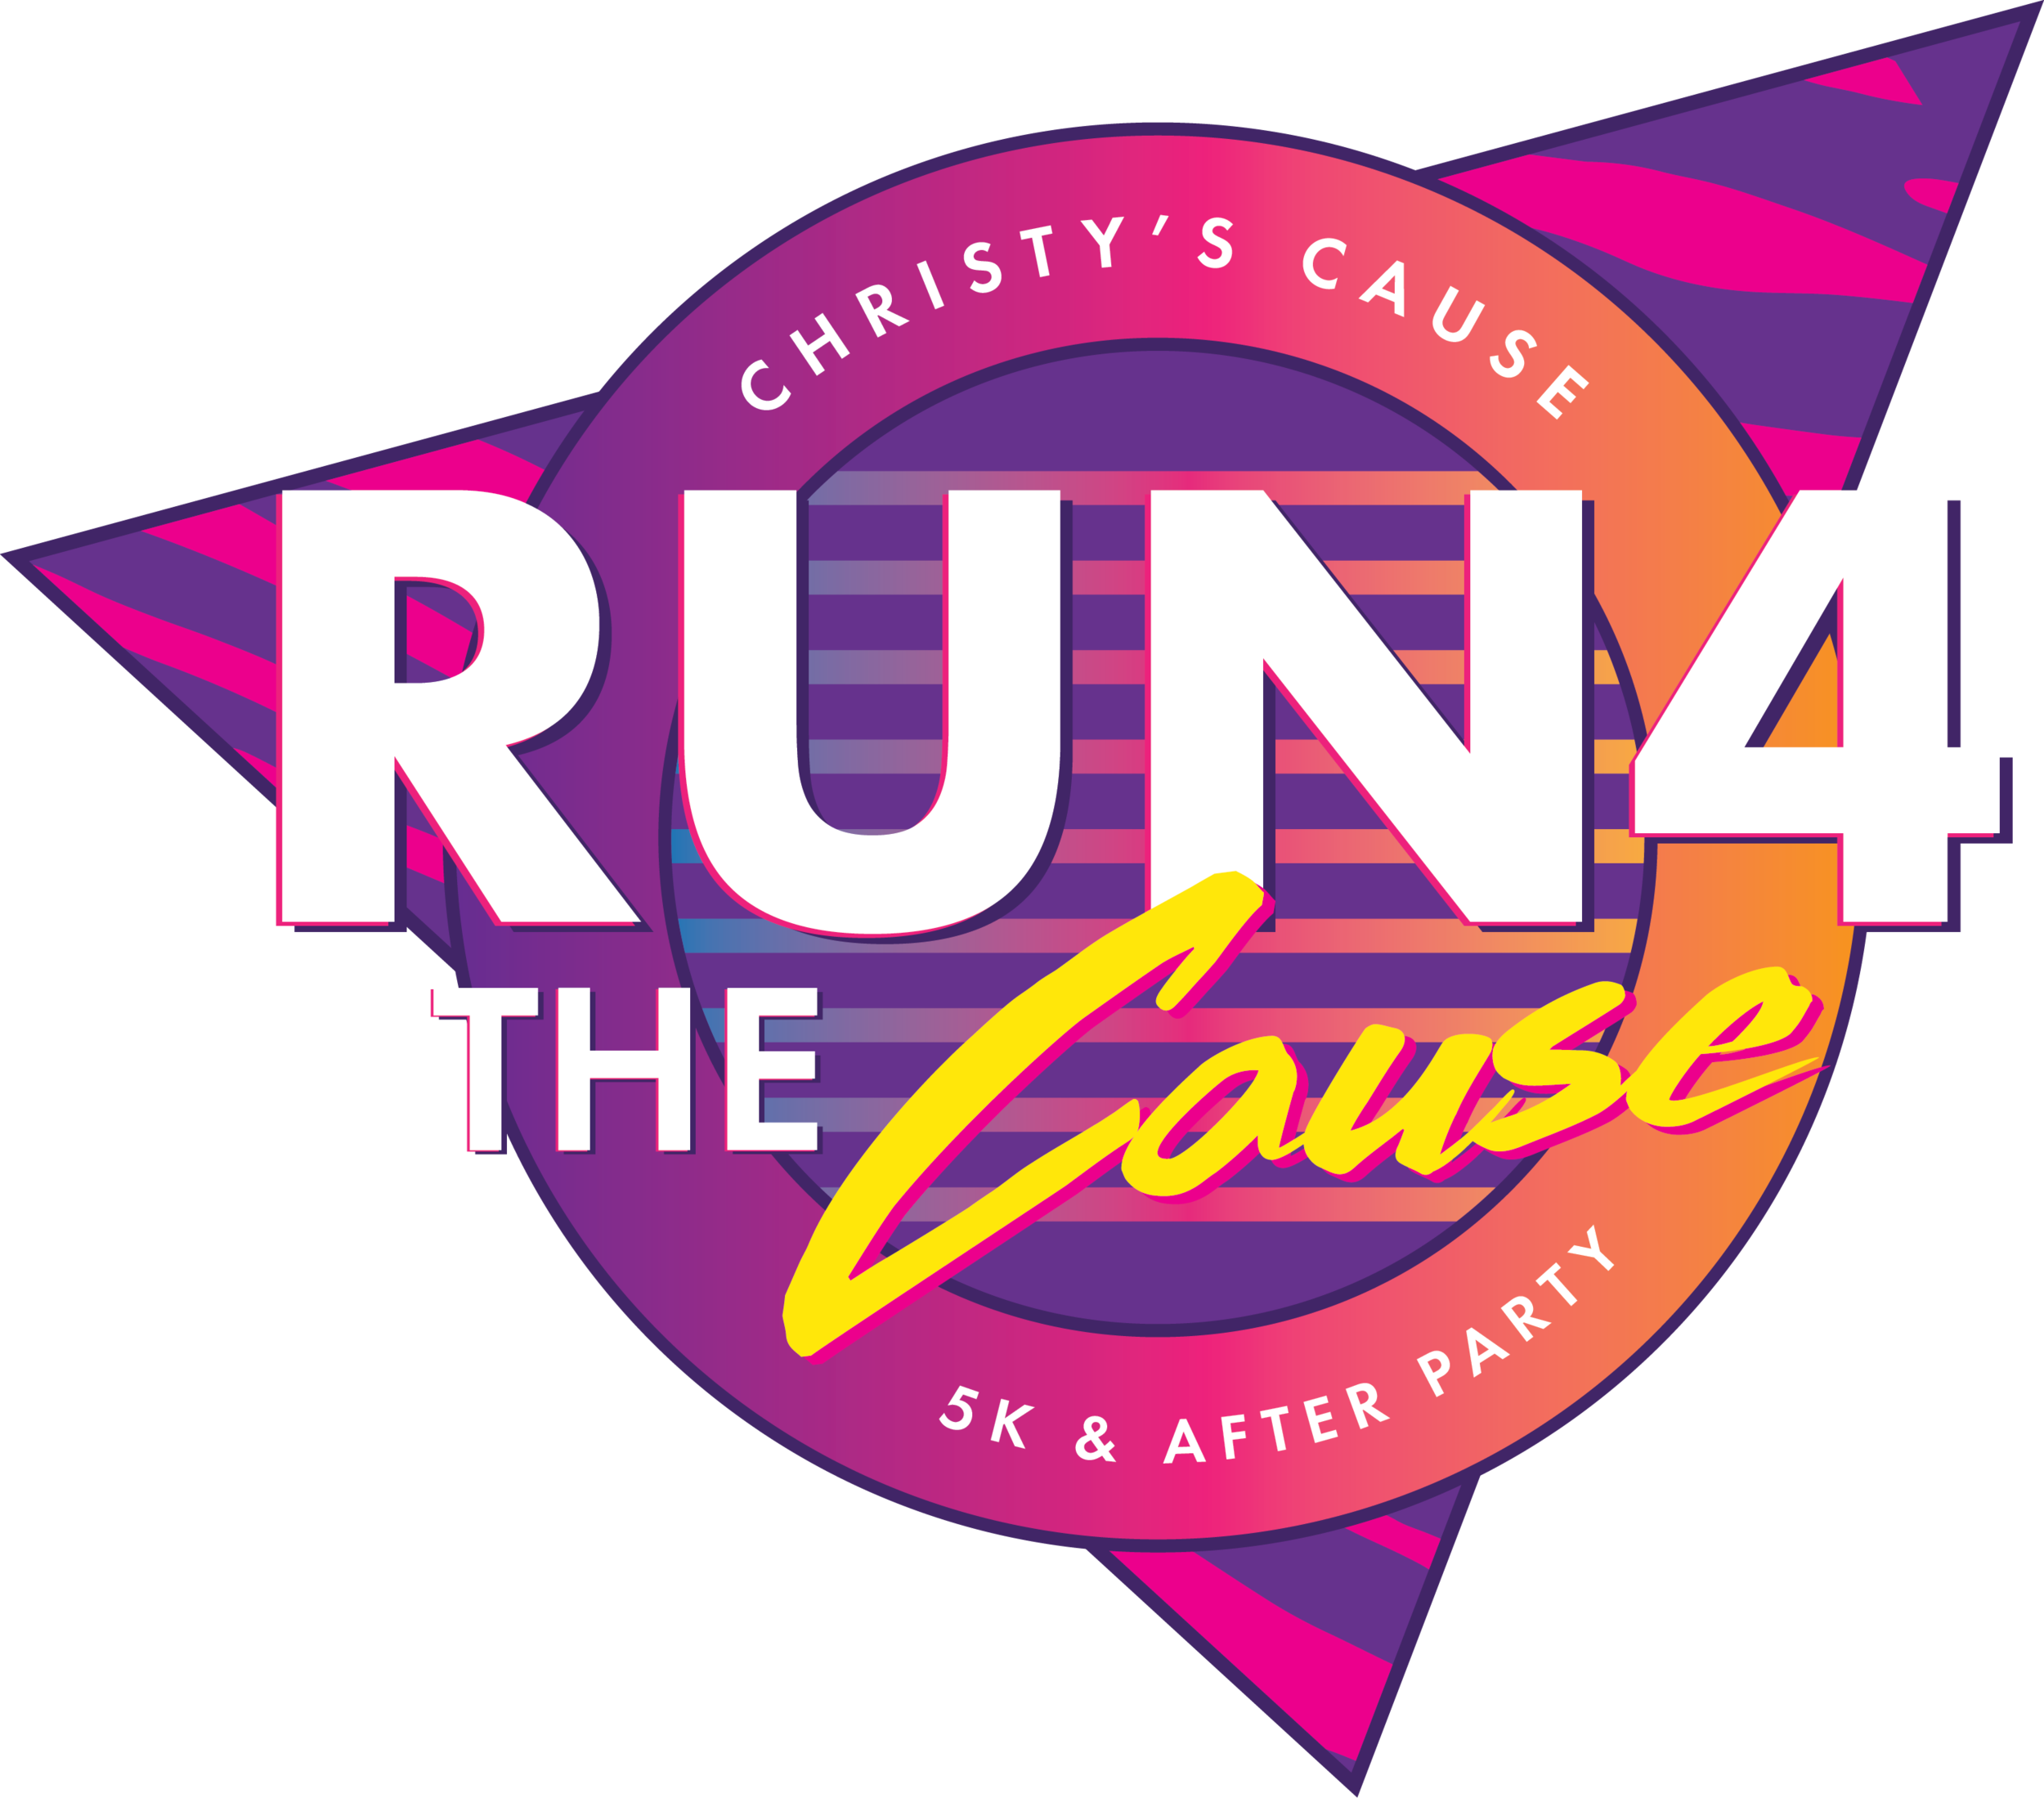 MAR 27, 2020 - Join us as weRun 4 The Cause